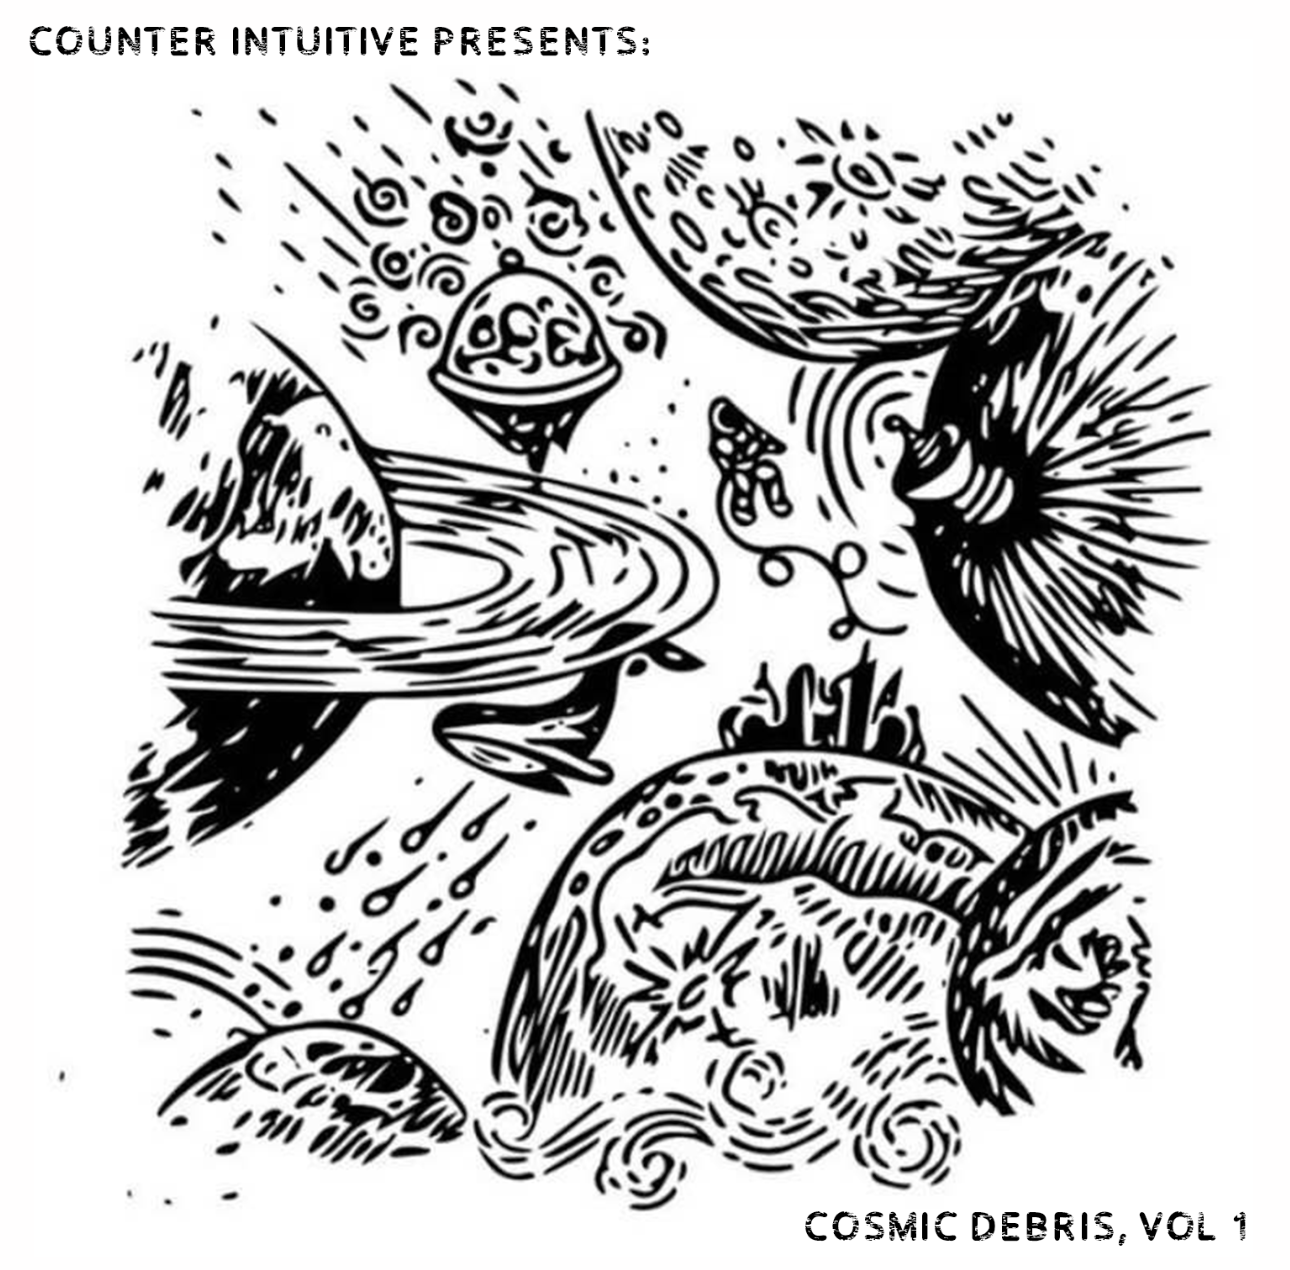 Counter Intuitive Presents: Cosmic Debris, Vol 1.